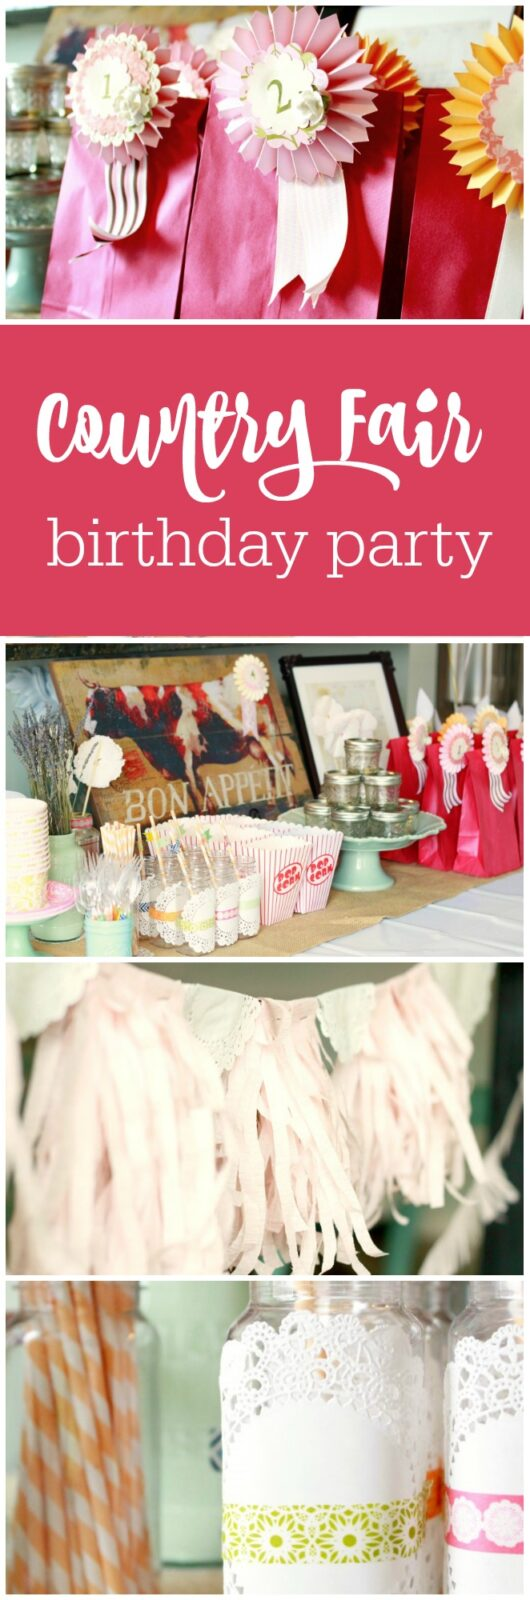 Country Fair 9th Birthday Day By The Crafty Woman Featured On Party Teacher